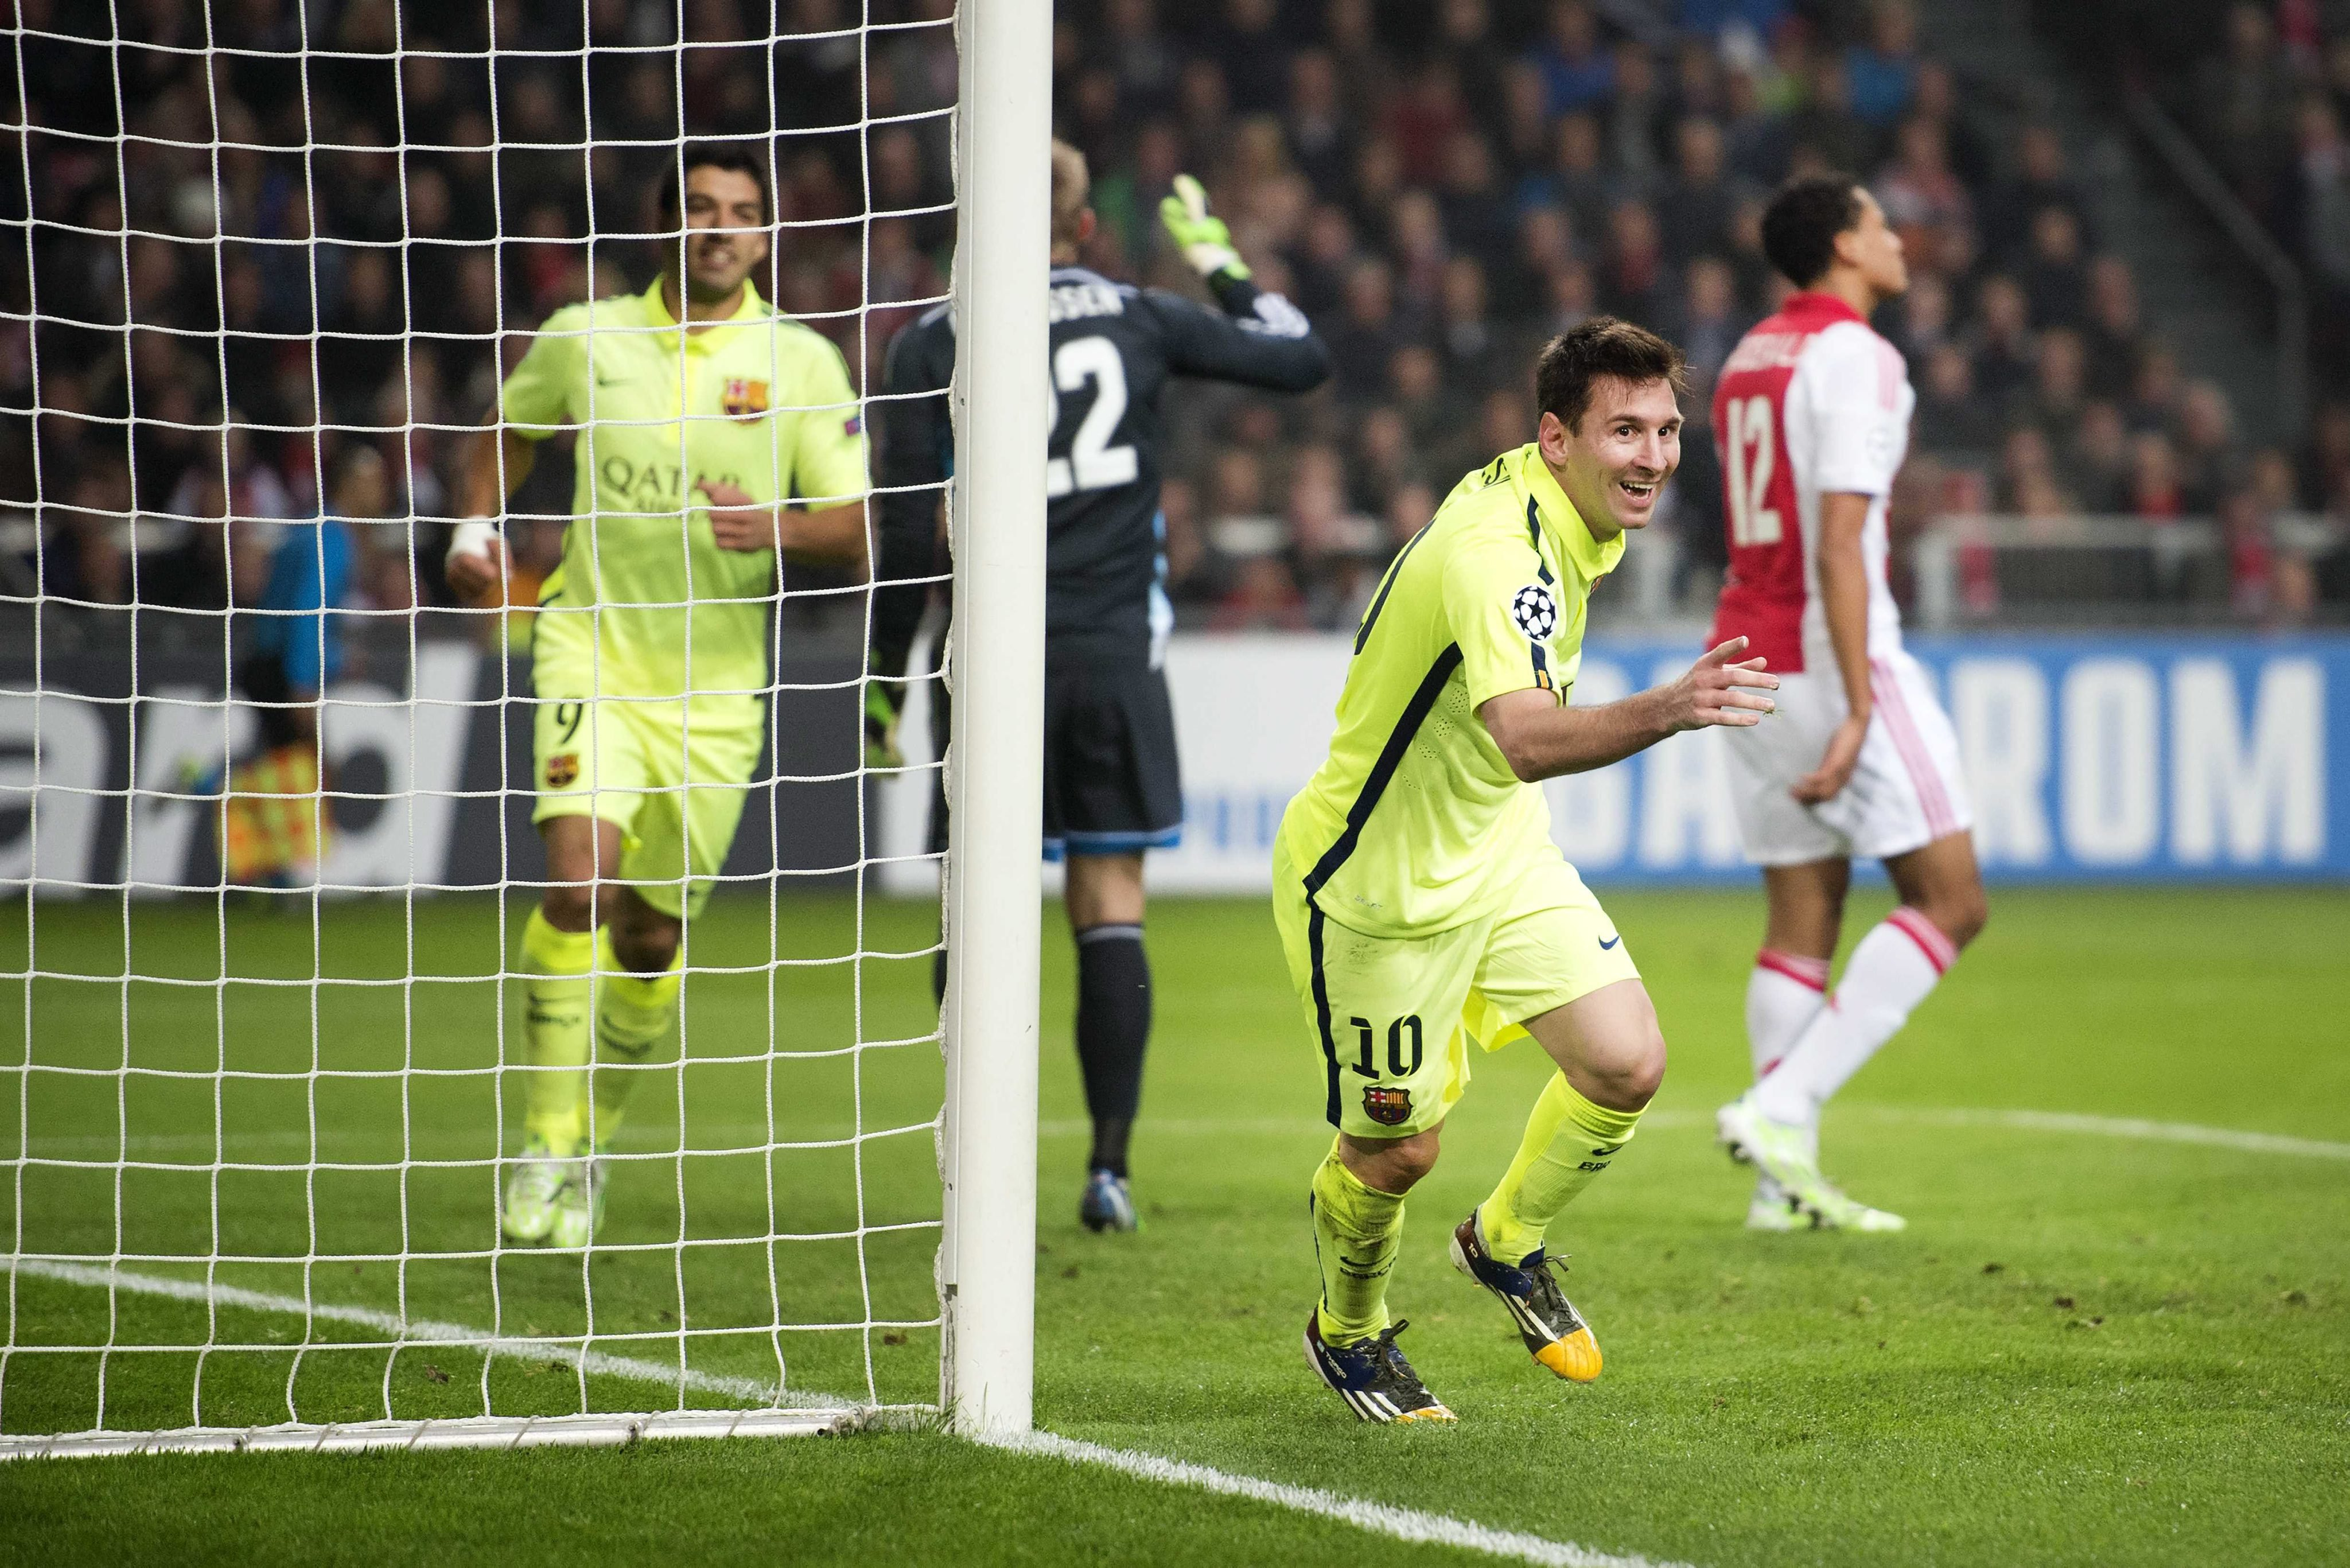 FC Barcelona Lionel Messi celebrates his 2-0 during the UEFA Champions League group F soccer match between Ajax Amsterdam and FC Barcelona in Amsterdam on Nov. 5, 2014.